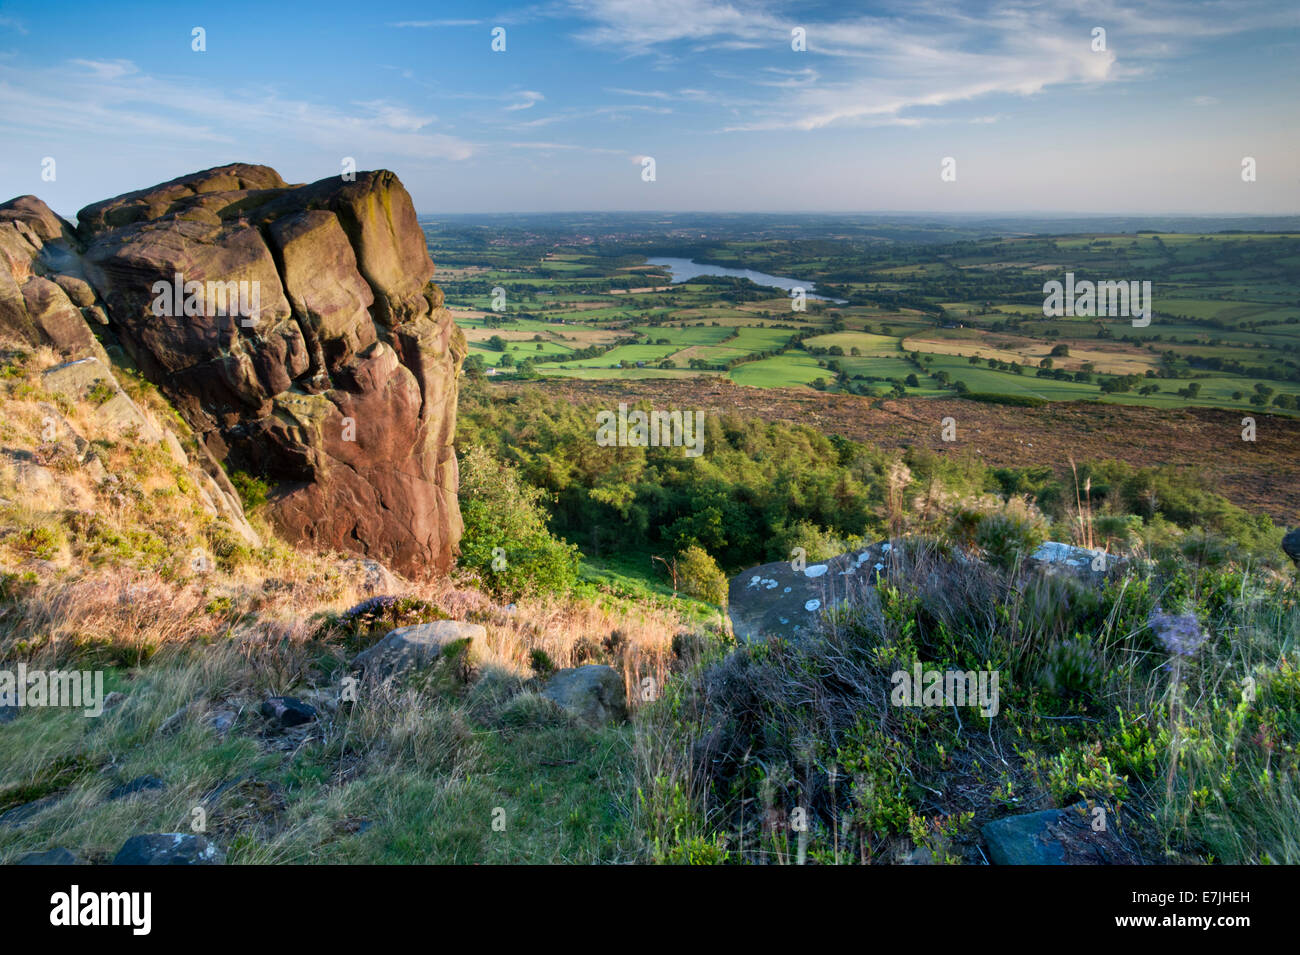 Tittesworth Reservoir viewed from The Roaches, Peak District National Park, Staffordshire, England, UK - Stock Image